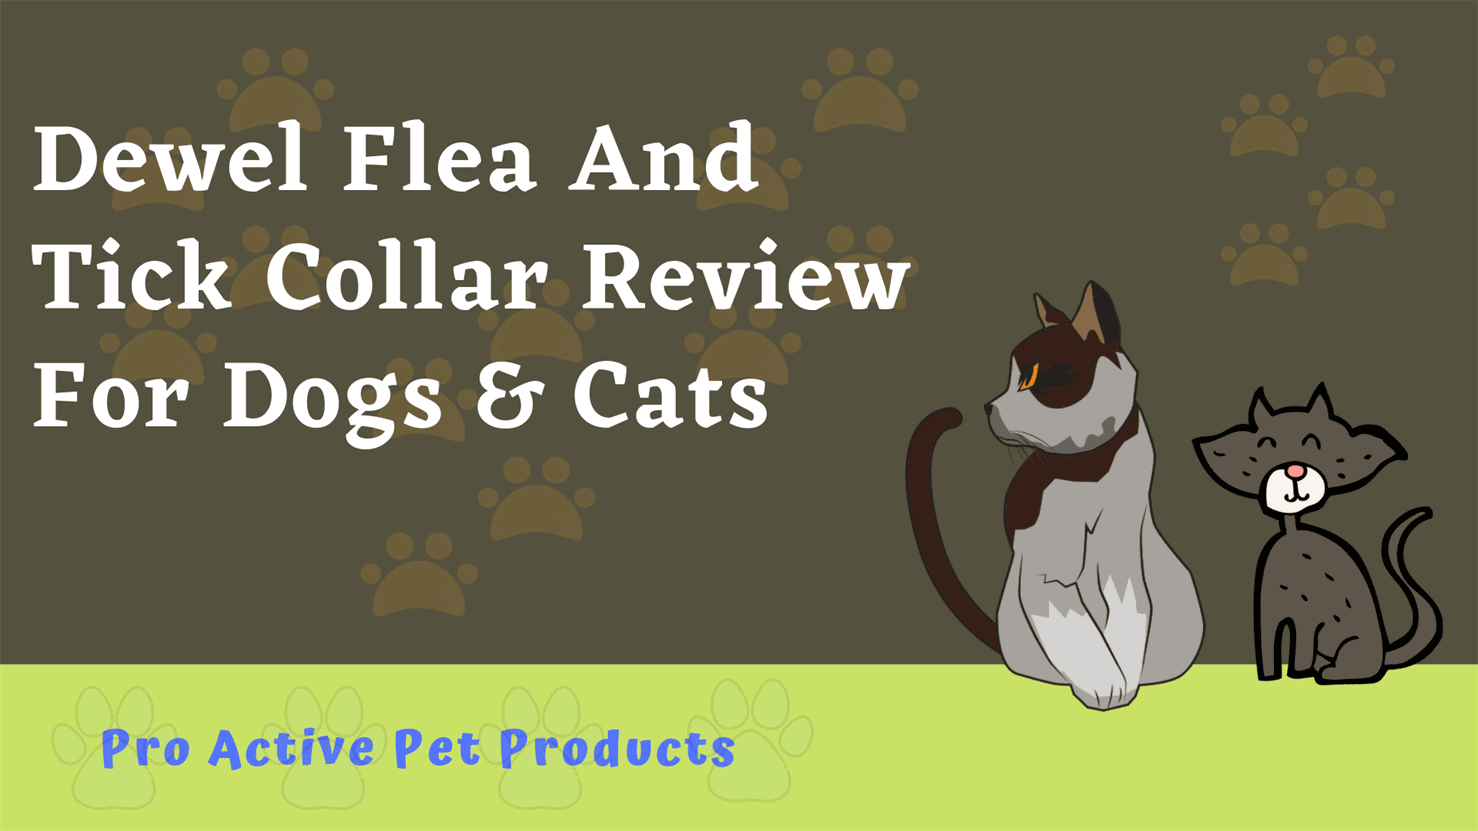 Dewel Flea And Tick Collar Review For Dogs & Cats